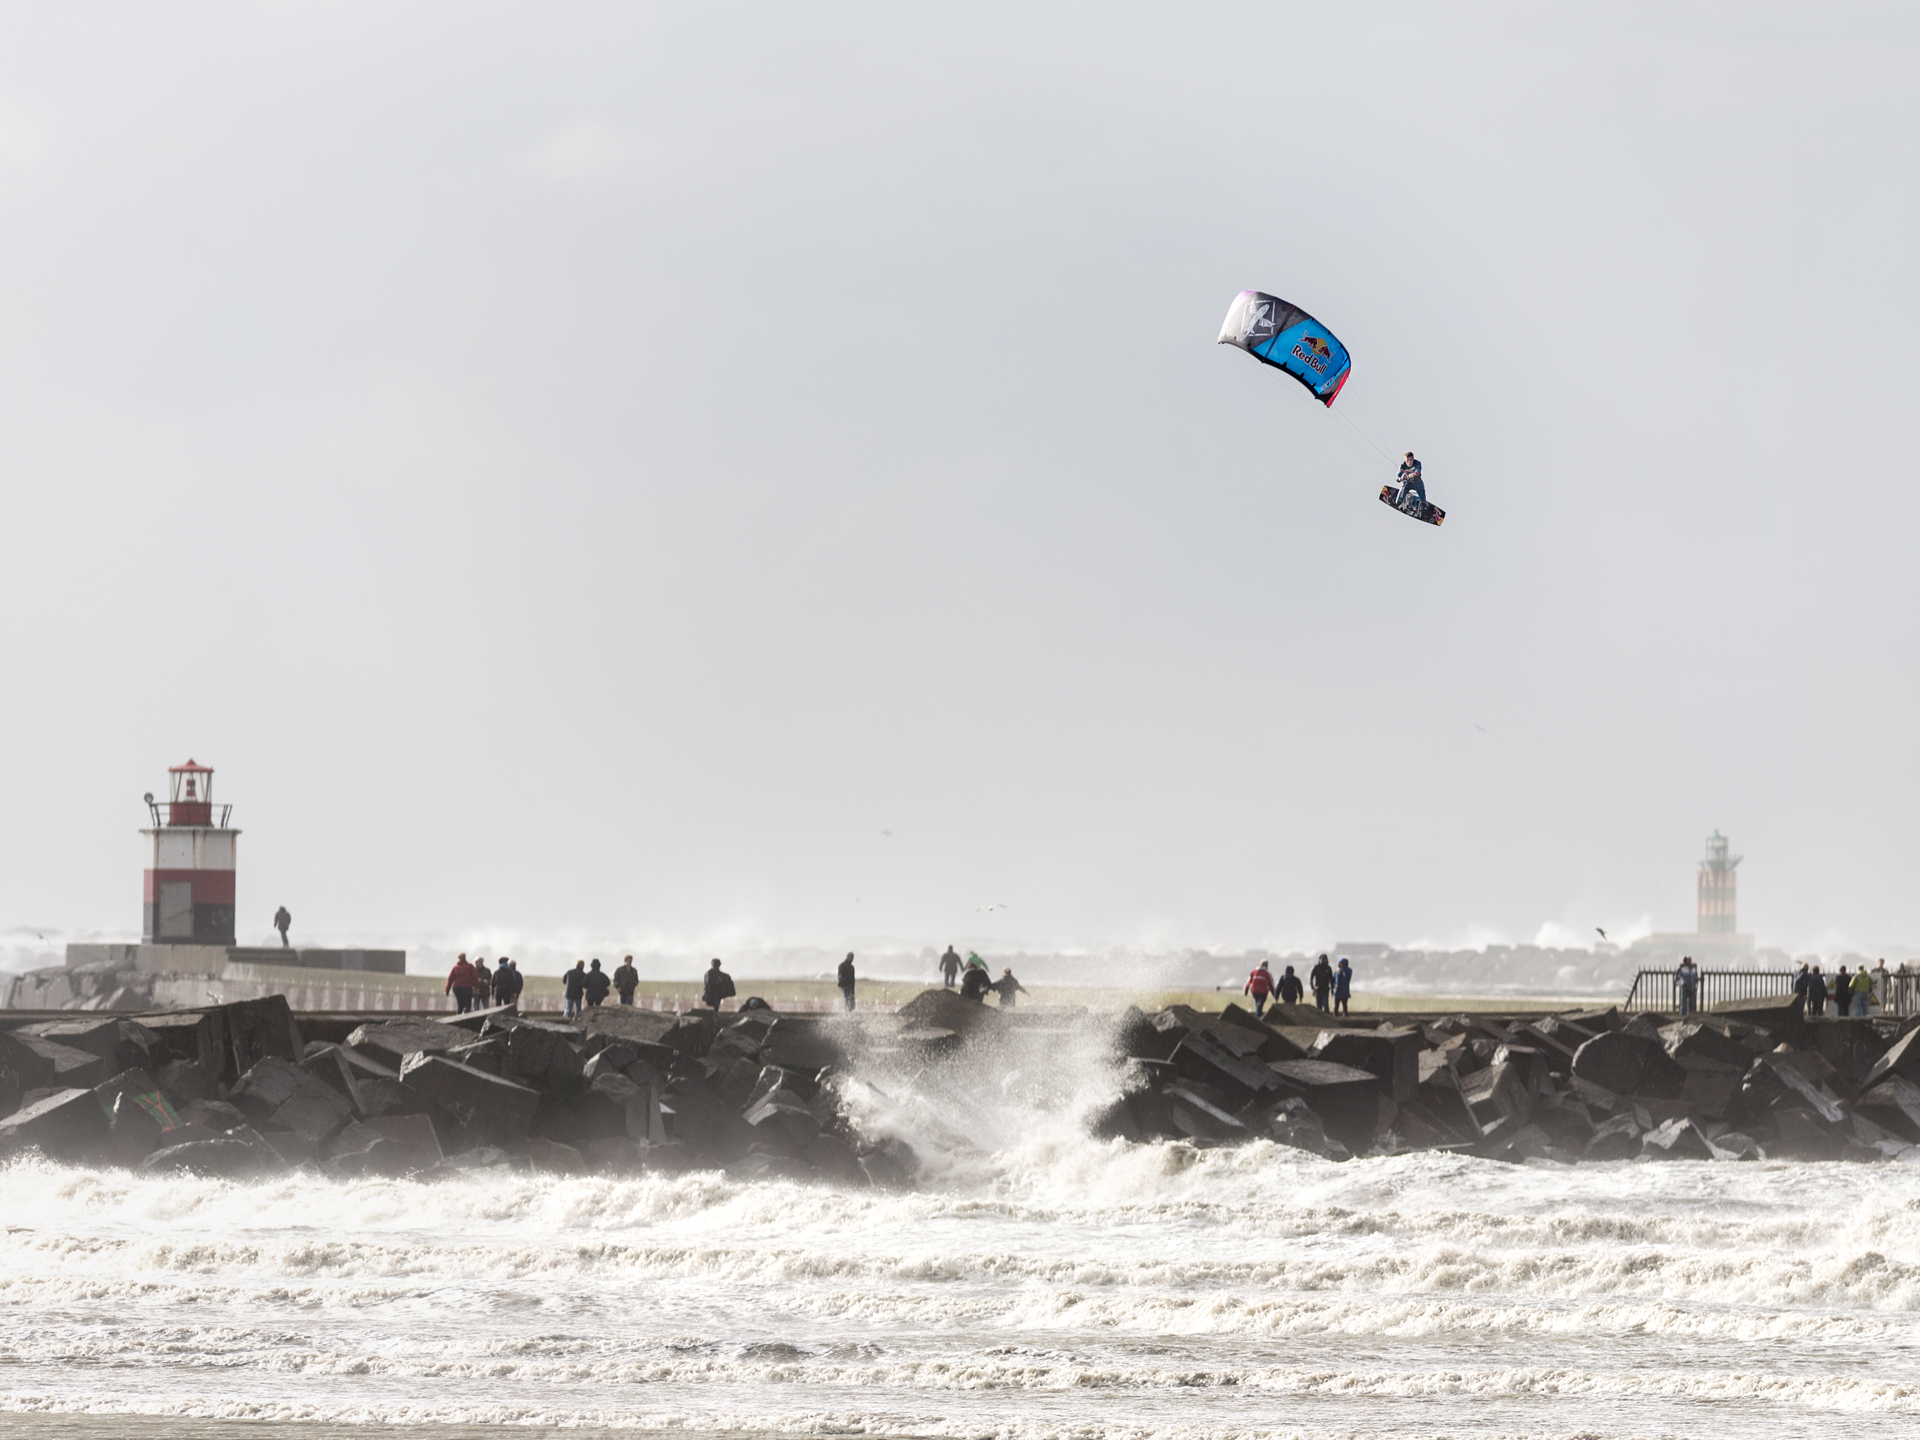 kitesurf wallpaper image - Ruben Lenten stormchasing at Wijk aan Zee megaloop - in resolution: Standard 4:3 1920 X 1440